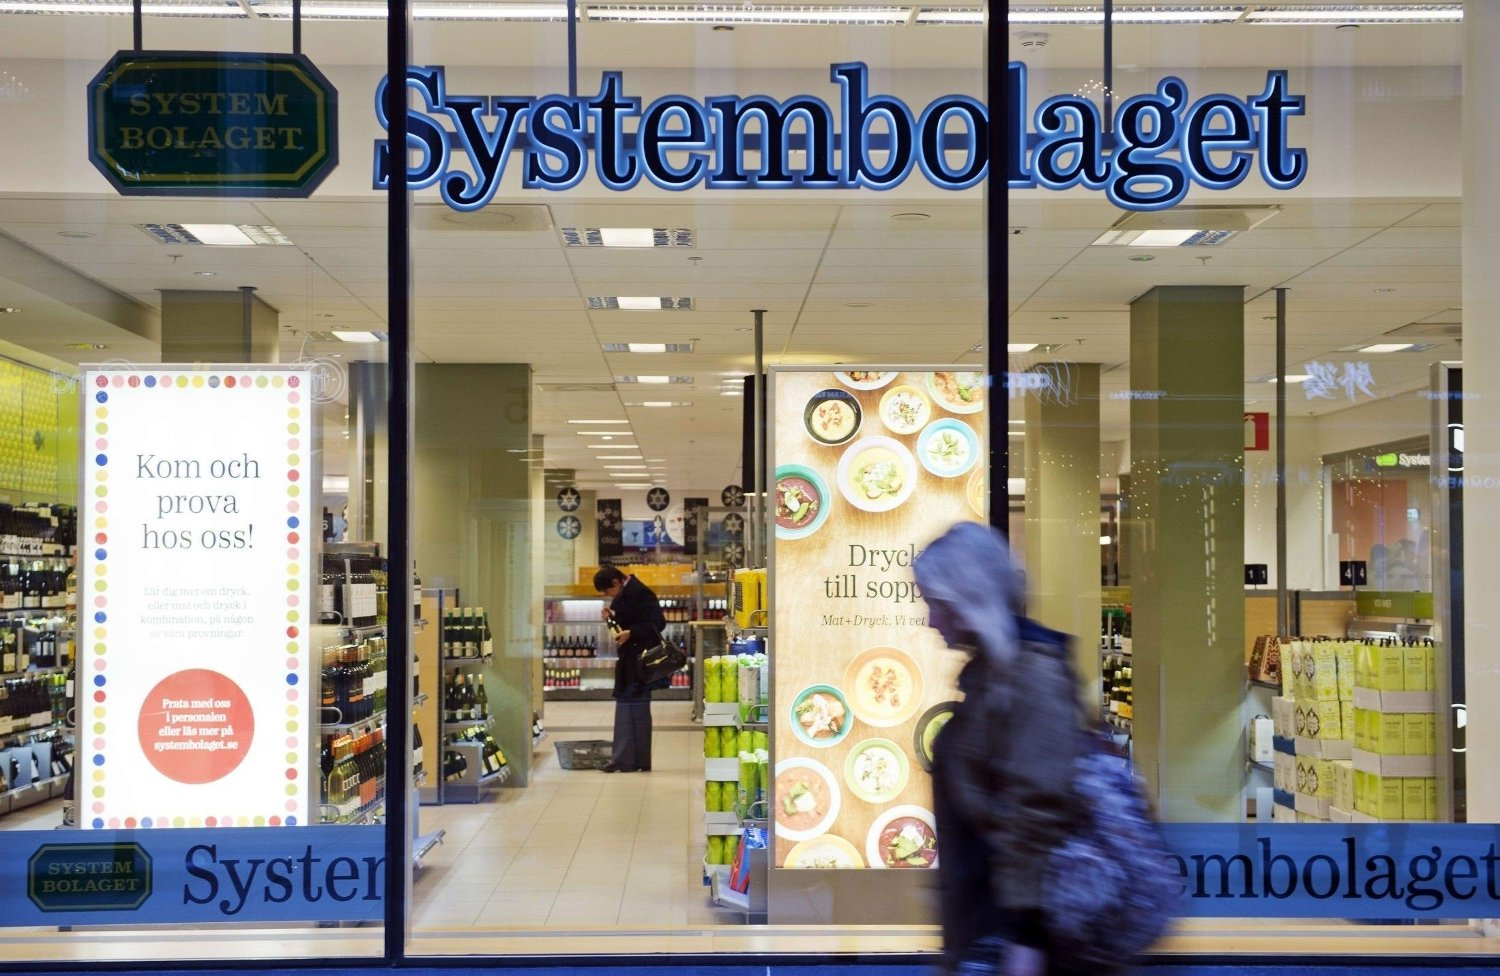 TO GO WITH AFP STORY BY ANNA-KARIN LAMPOU A woman walks outside one of the government controlled Systembolaget liquor stores in downtown Stockholm on December 19, 2013. Systembolaget is the only retail store allowed to sell alcoholic beverages that contain more than 3.5 percent alcohol. According to Systembolaget, it has a nationwide retail network of 422 stores and over 500 agents serving smaller communities. AFP PHOTO/JONATHAN NACKSTRAND